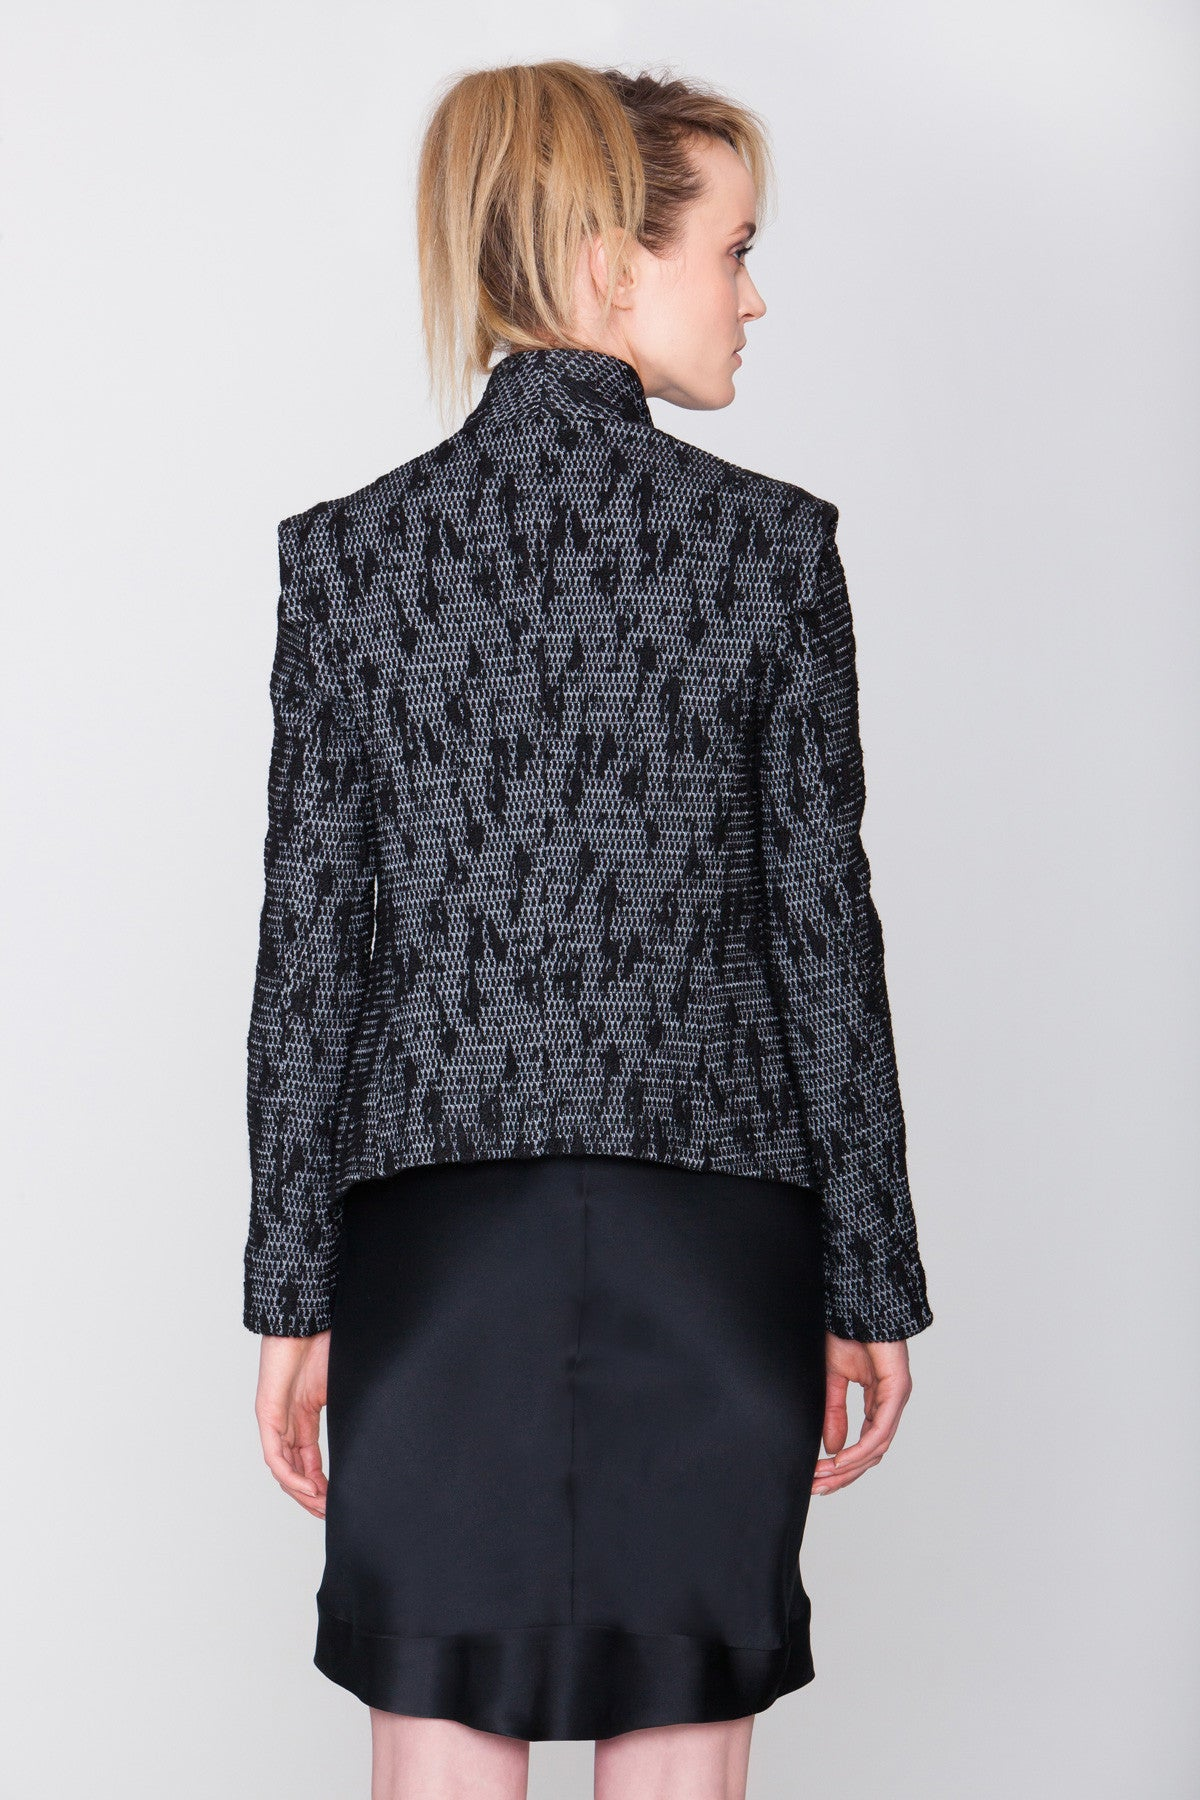 BETINA HOLTE CROP JACKET